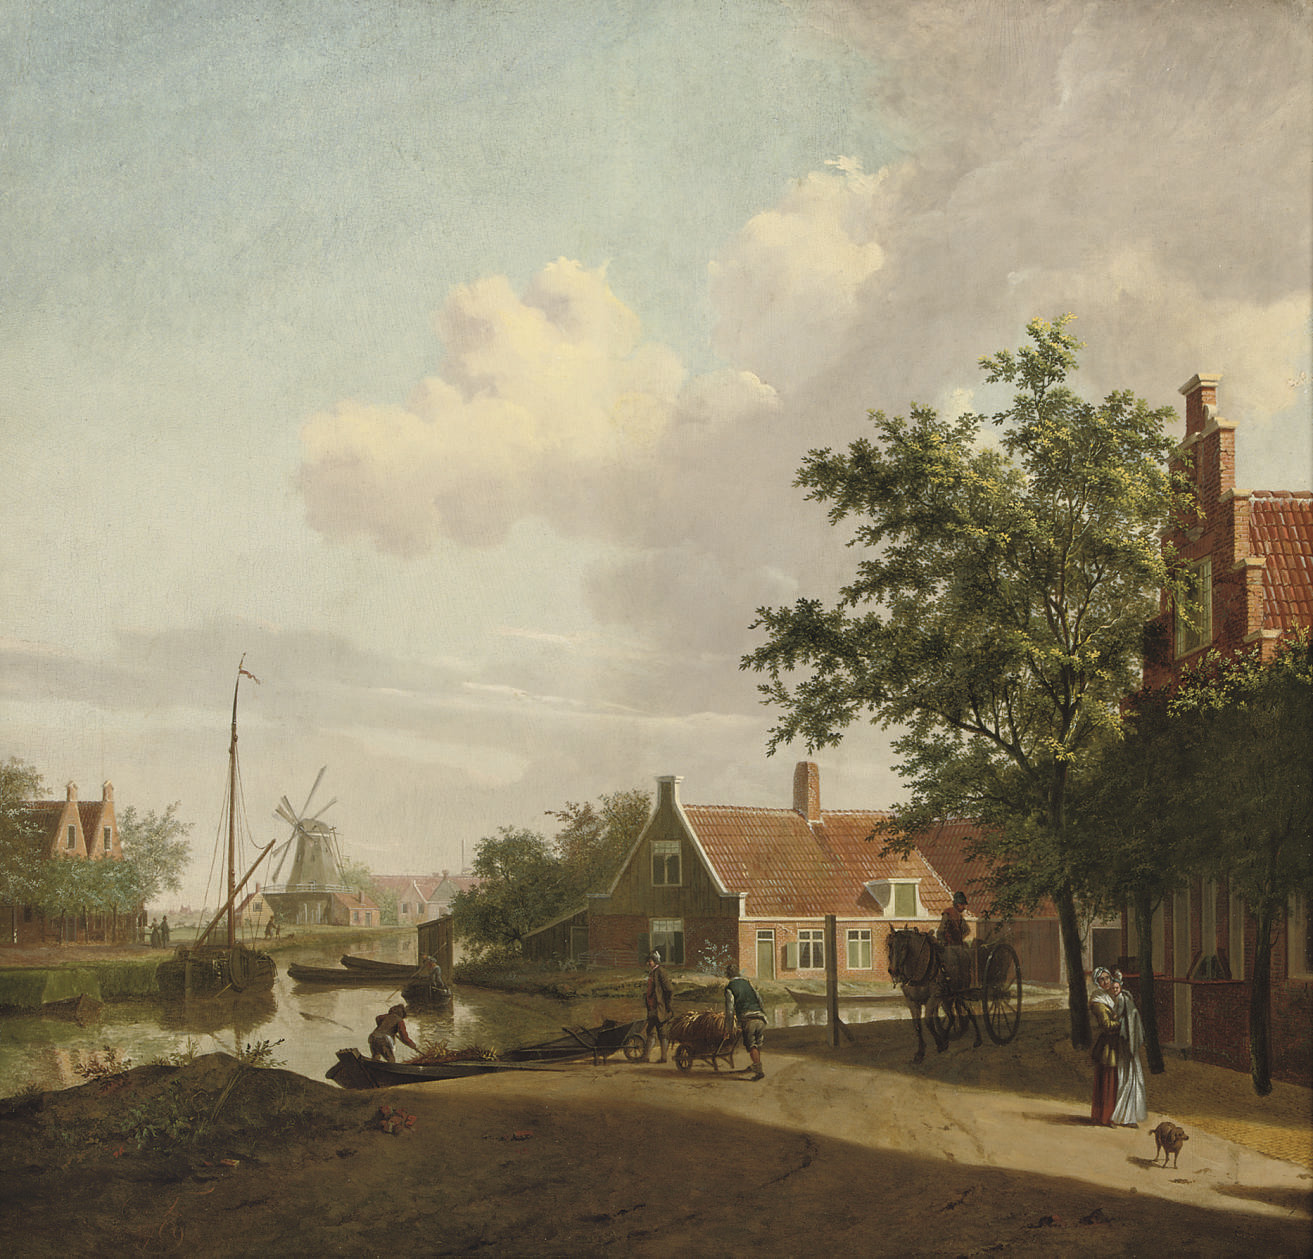 A town with figures working and conversing along a river, a windmill beyond